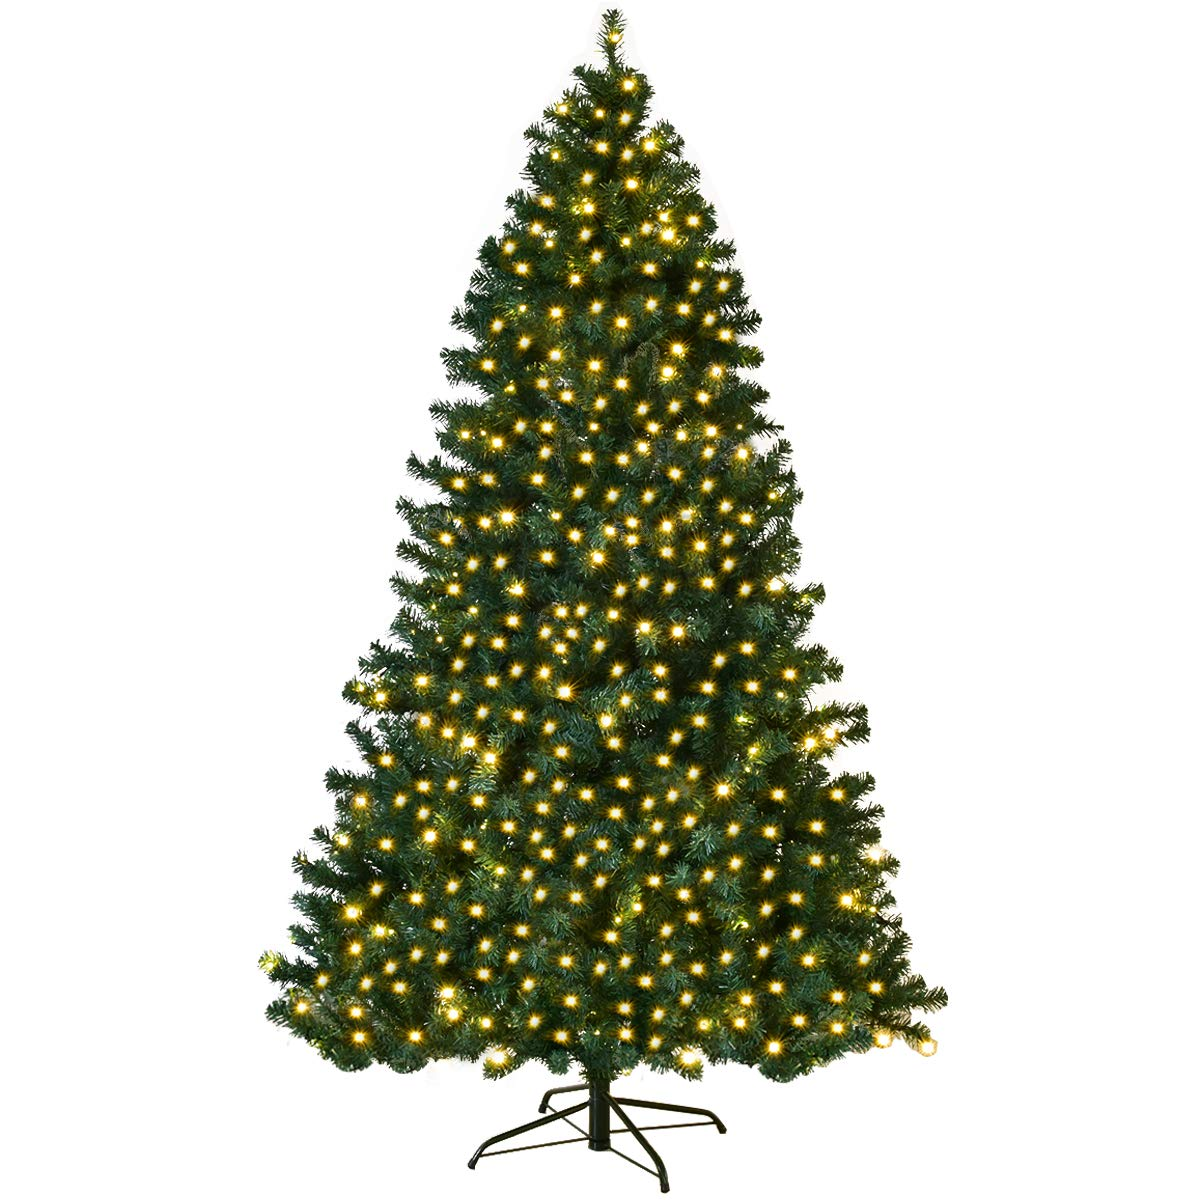 Goplus 7FT Pre-Lit PVC Artificial Christmas Tree Auto-Spread/Close up Premium Spruce Hinged w/ 300 LED Lights & Metal Stand, Green (7 FT)